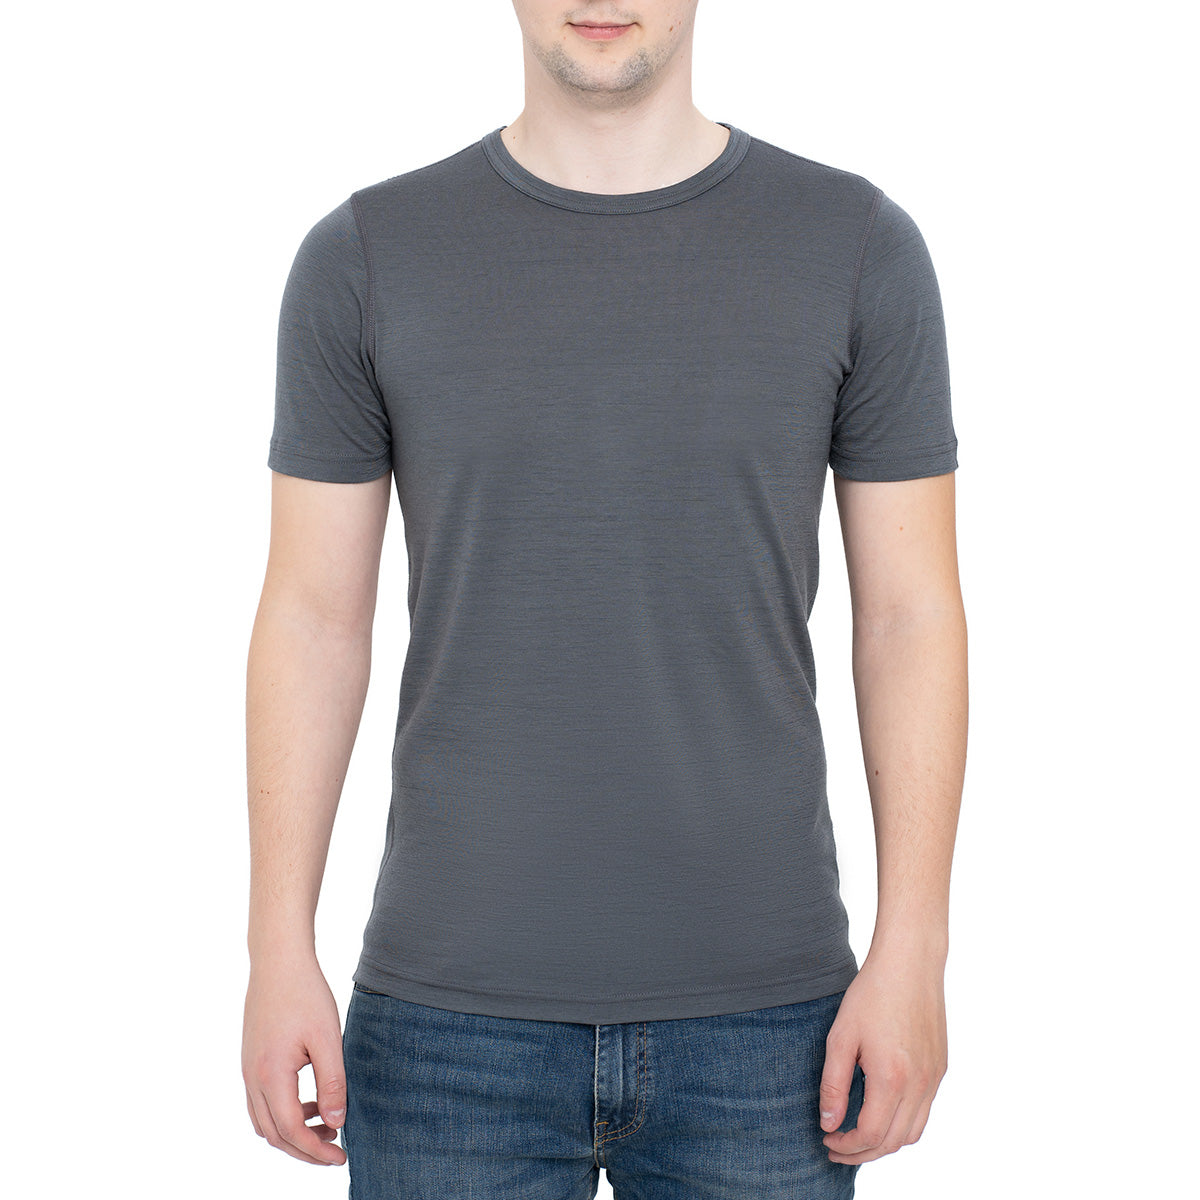 menique Men's Merino 160 Short Sleeve Crew Perfect Grey Color